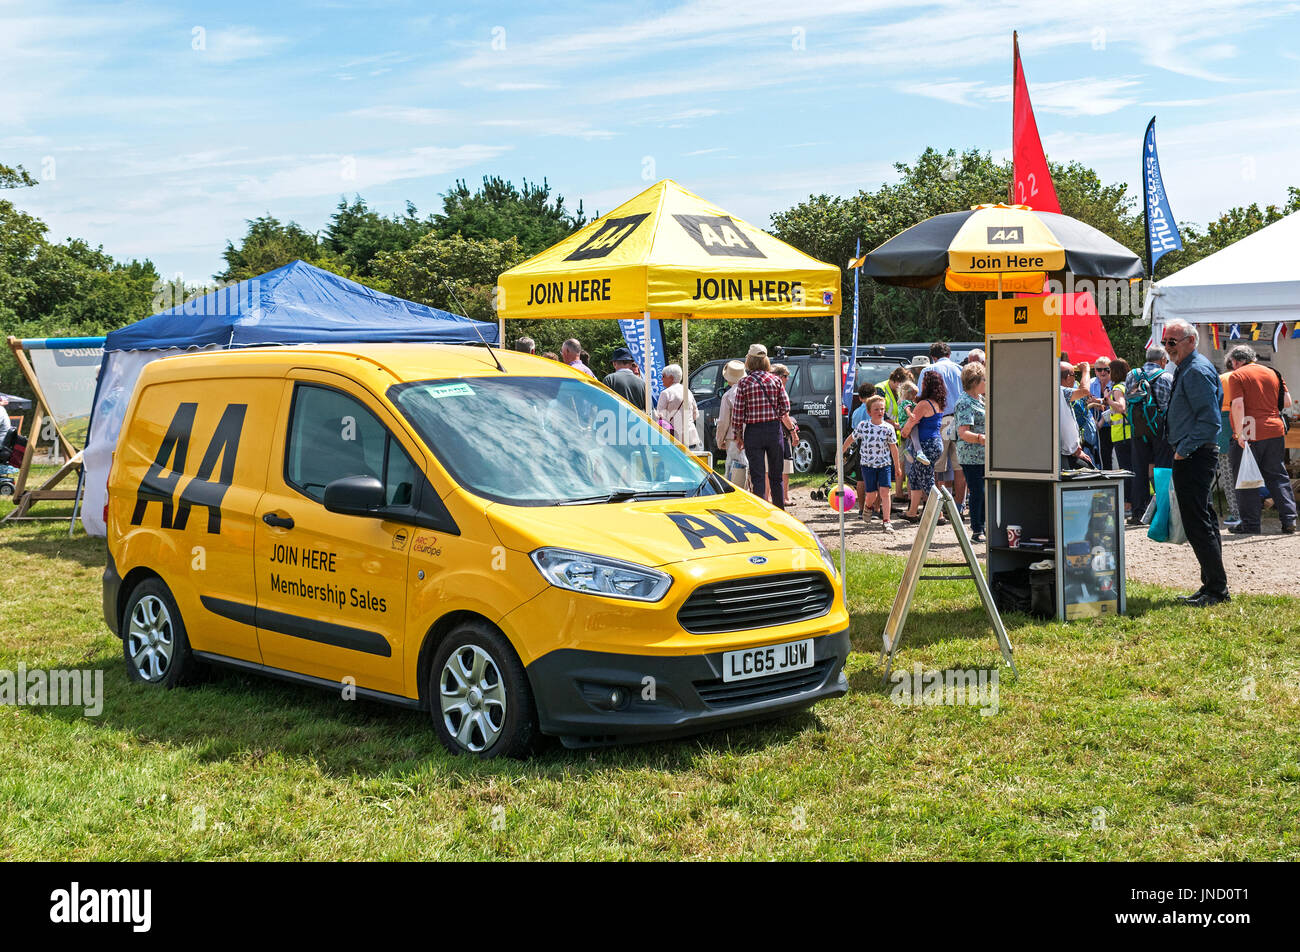 AA sales stand at a country show in cornwall, uk - Stock Image